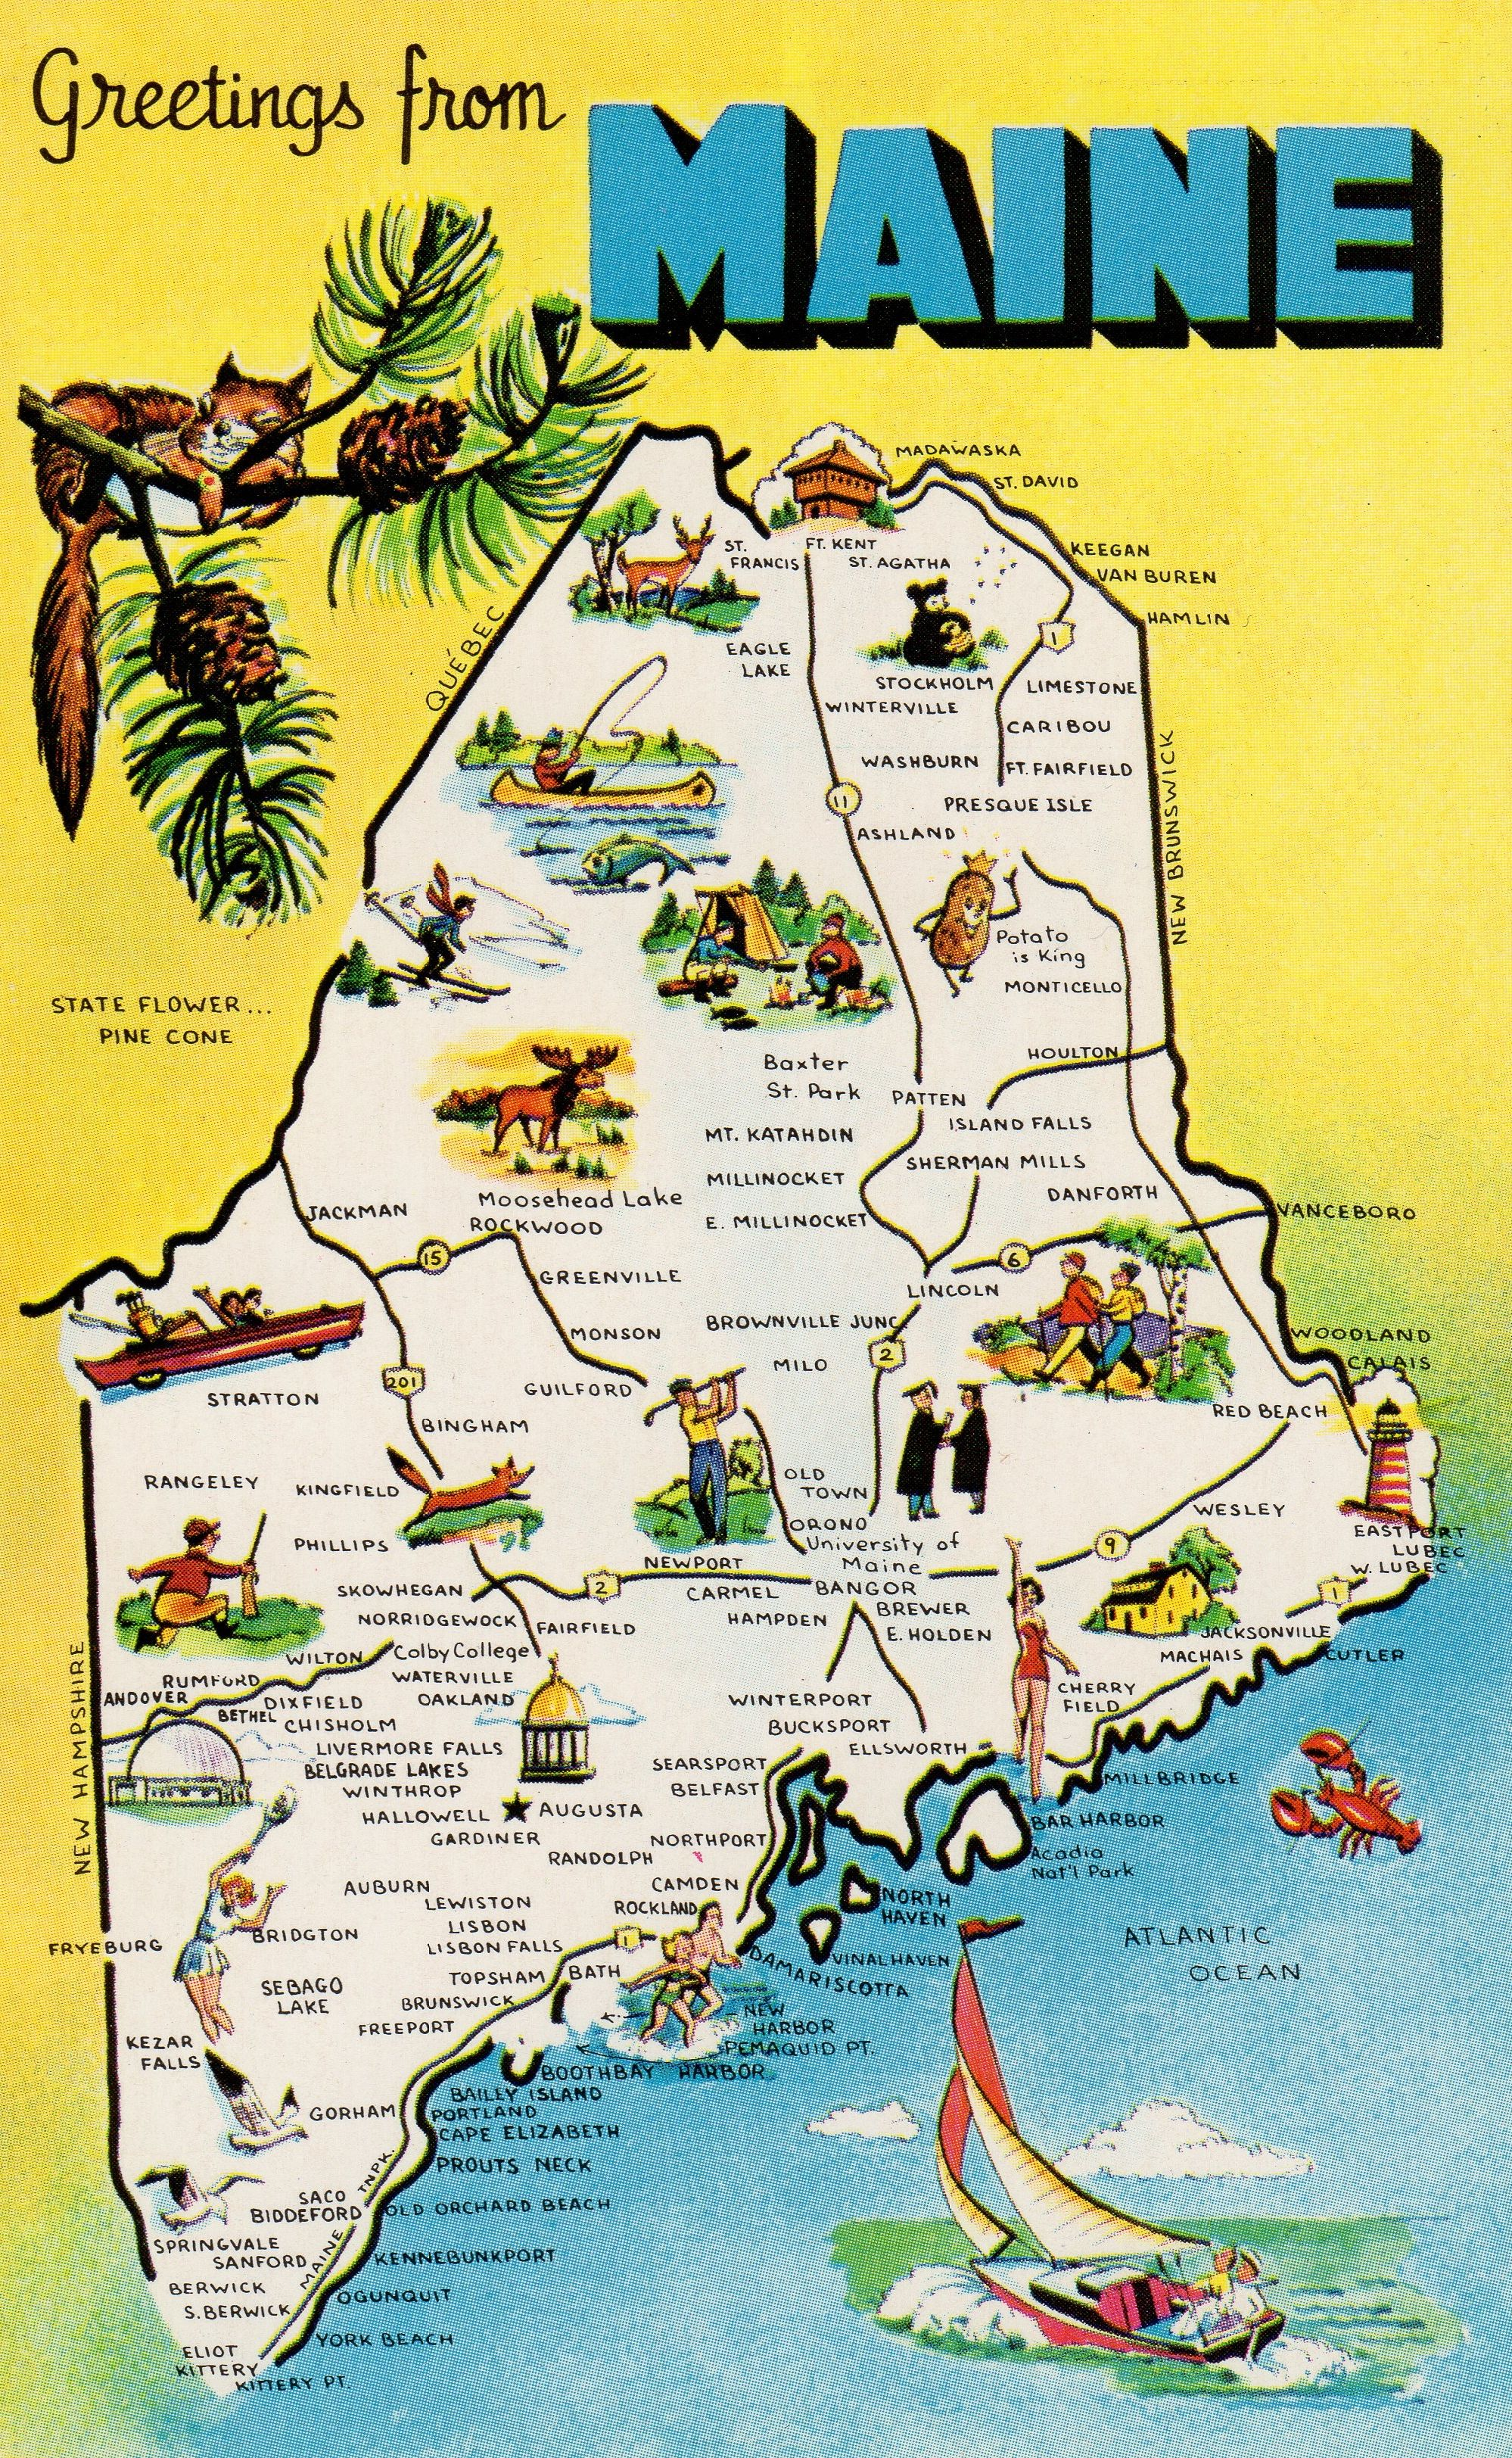 capital of maine map Maine Pine Tree State 23rd State Admitted To The Union capital of maine map